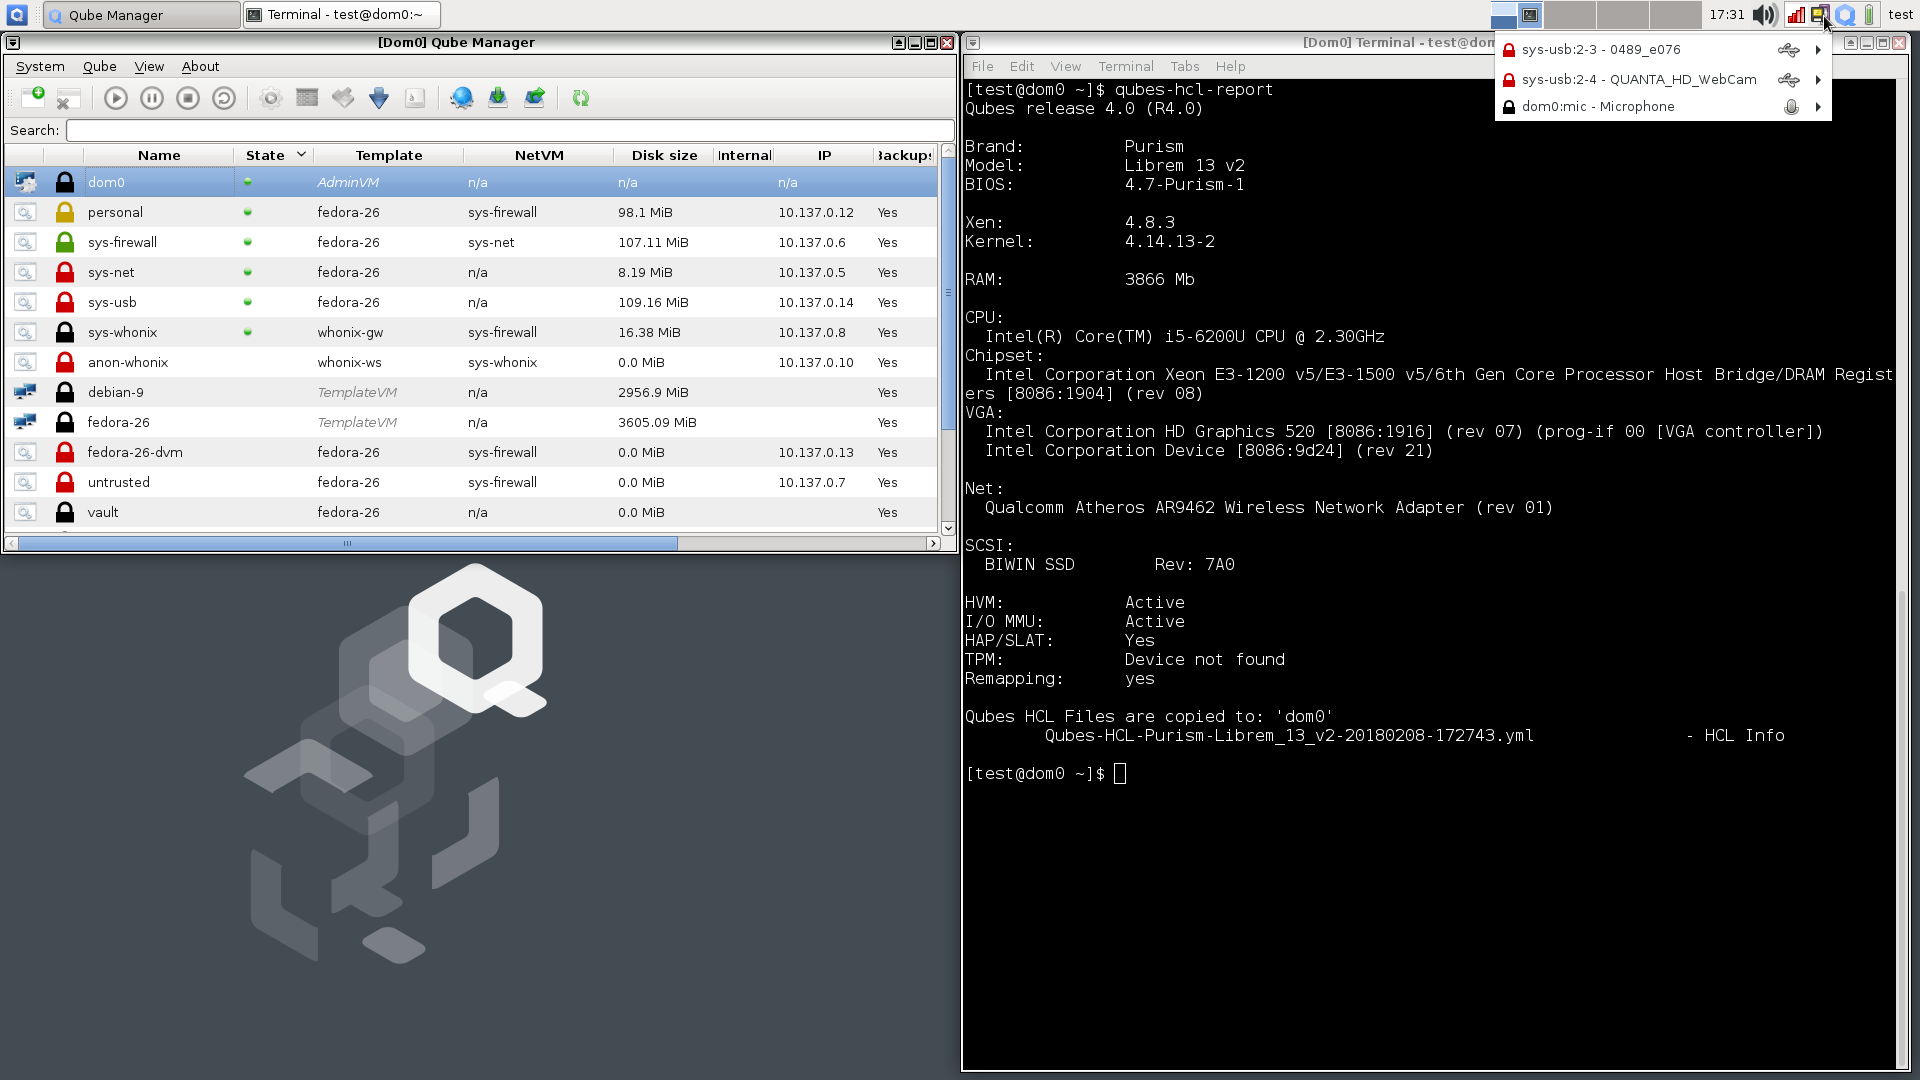 Qubes 4 0 fully working on Librem laptops, coreboot added